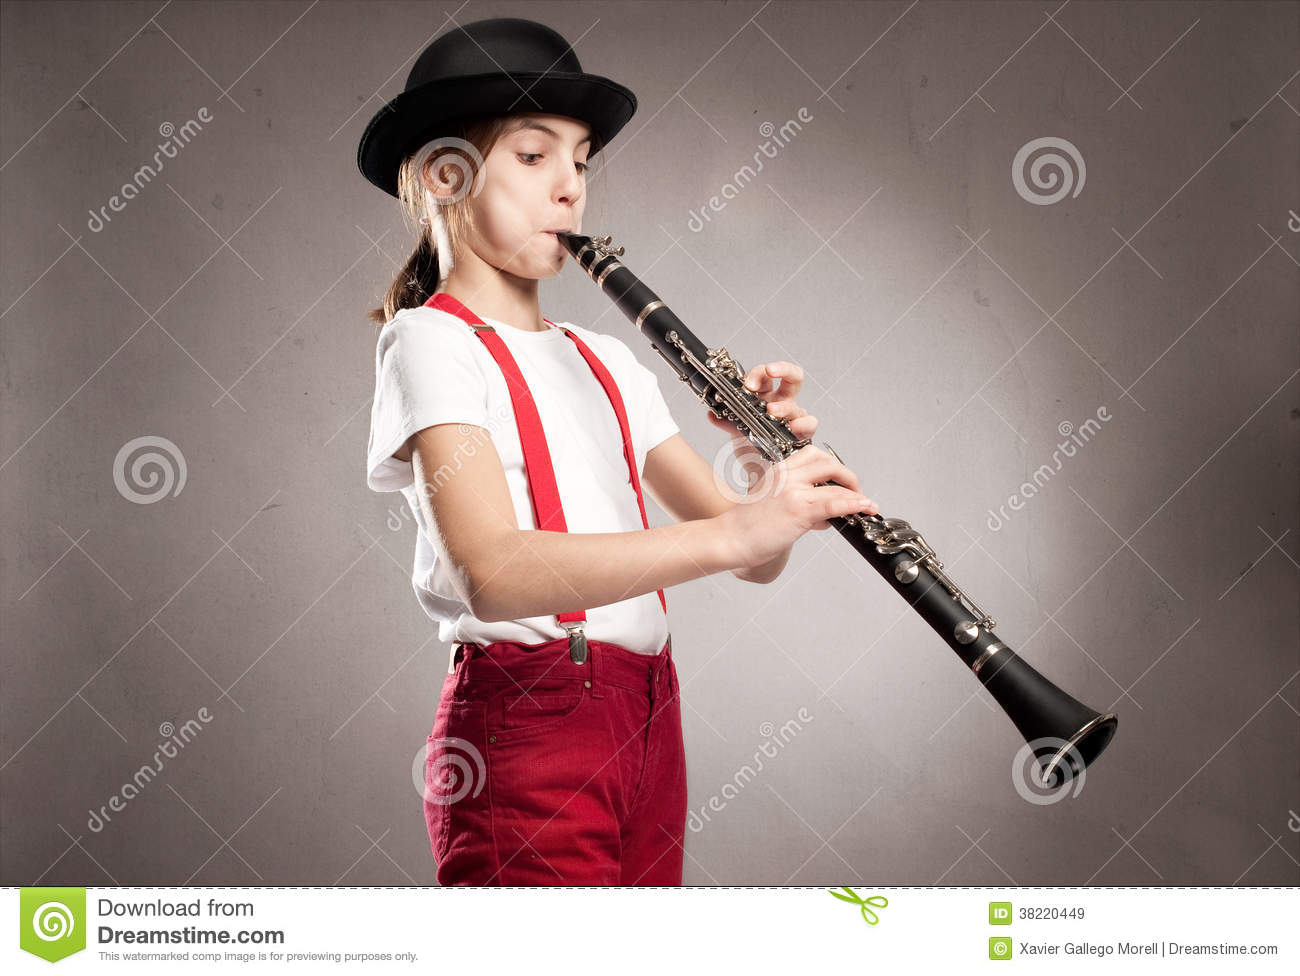 how to play a sharp on the clarinet